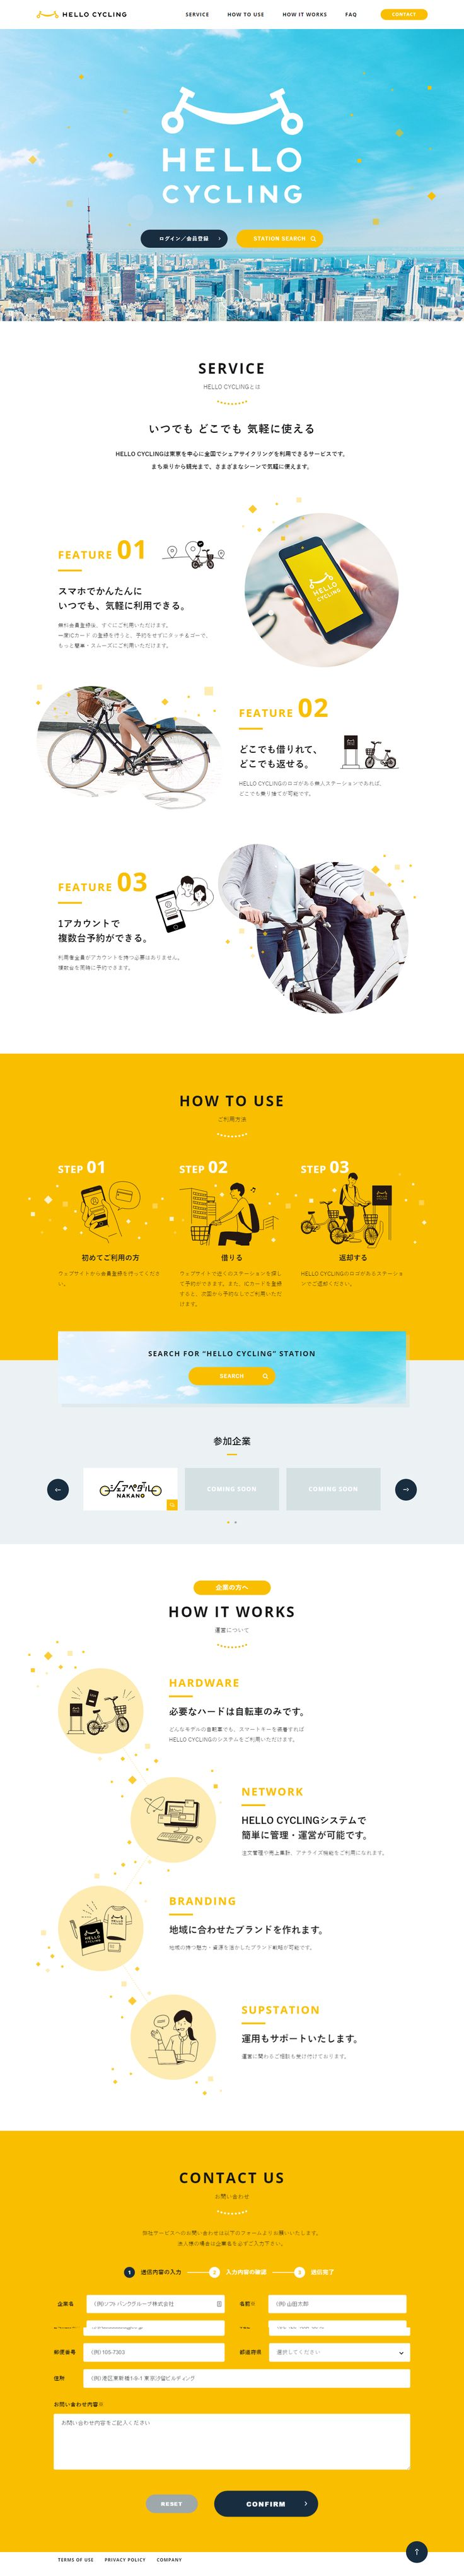 #local-web-design #promotion #1-column-layout #key-color-yellow #bg-color-white #Japanese #Flat-design #Illustration #Hero-Header